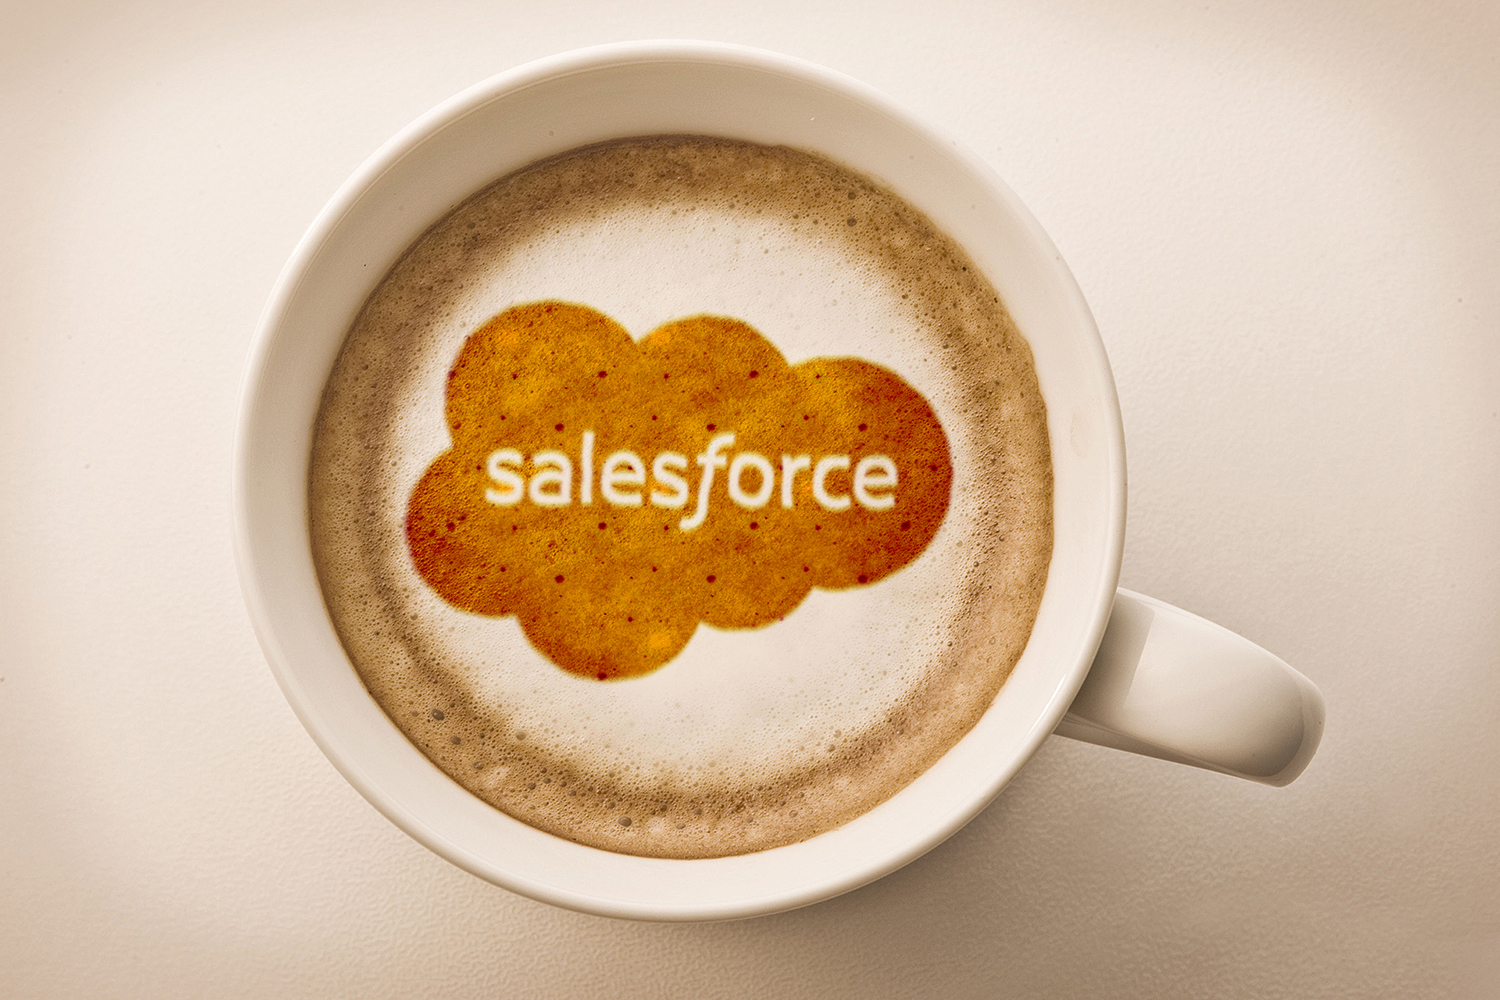 "<p><strong>Salesforce Ben</strong>Blog.<a href=""/blog/adminhero""> More →</a></p>"